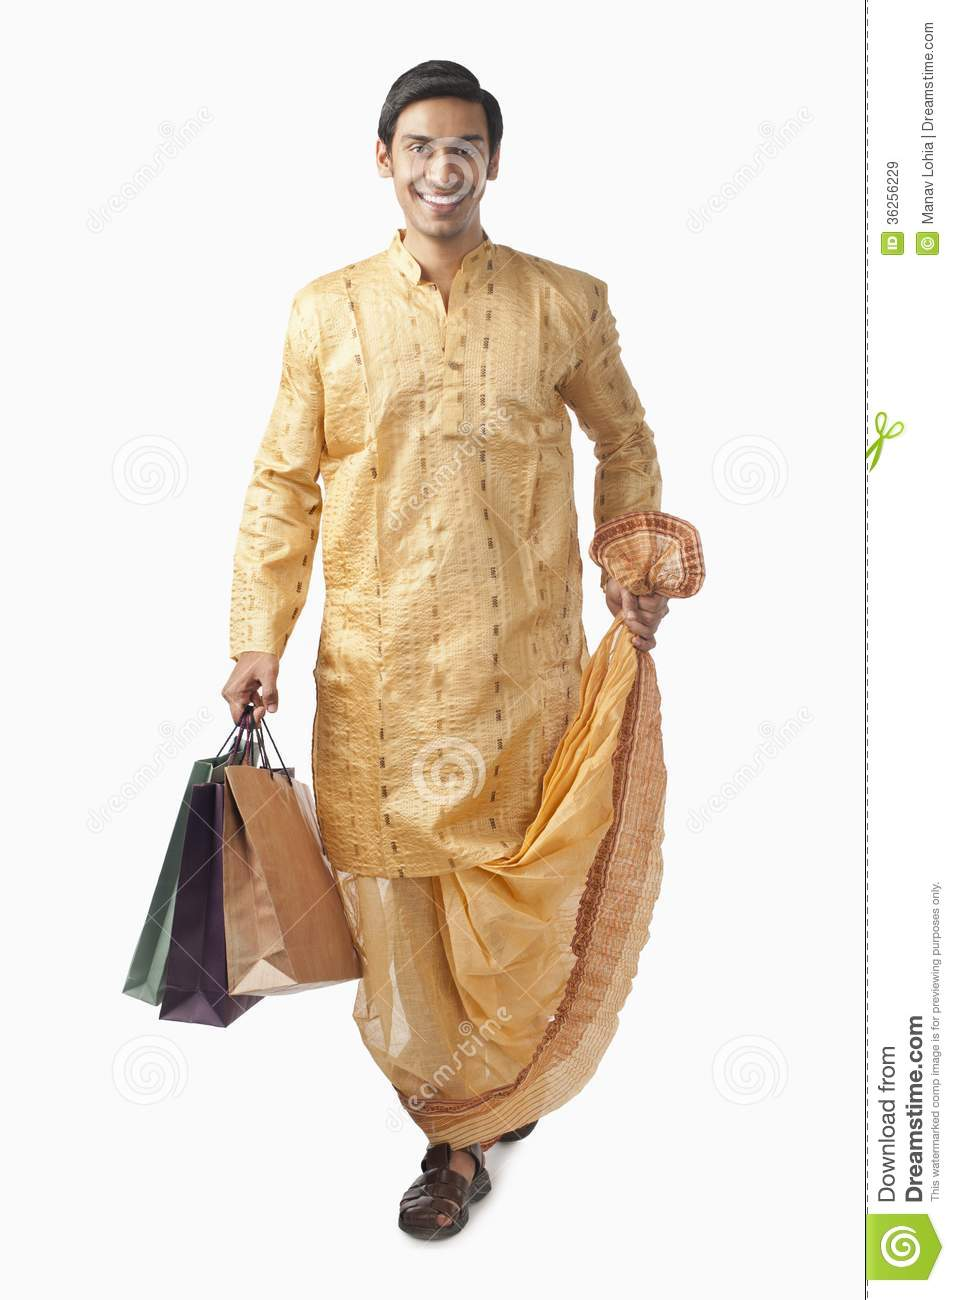 bengali man carrying shopping bags and smiling royalty free stock images